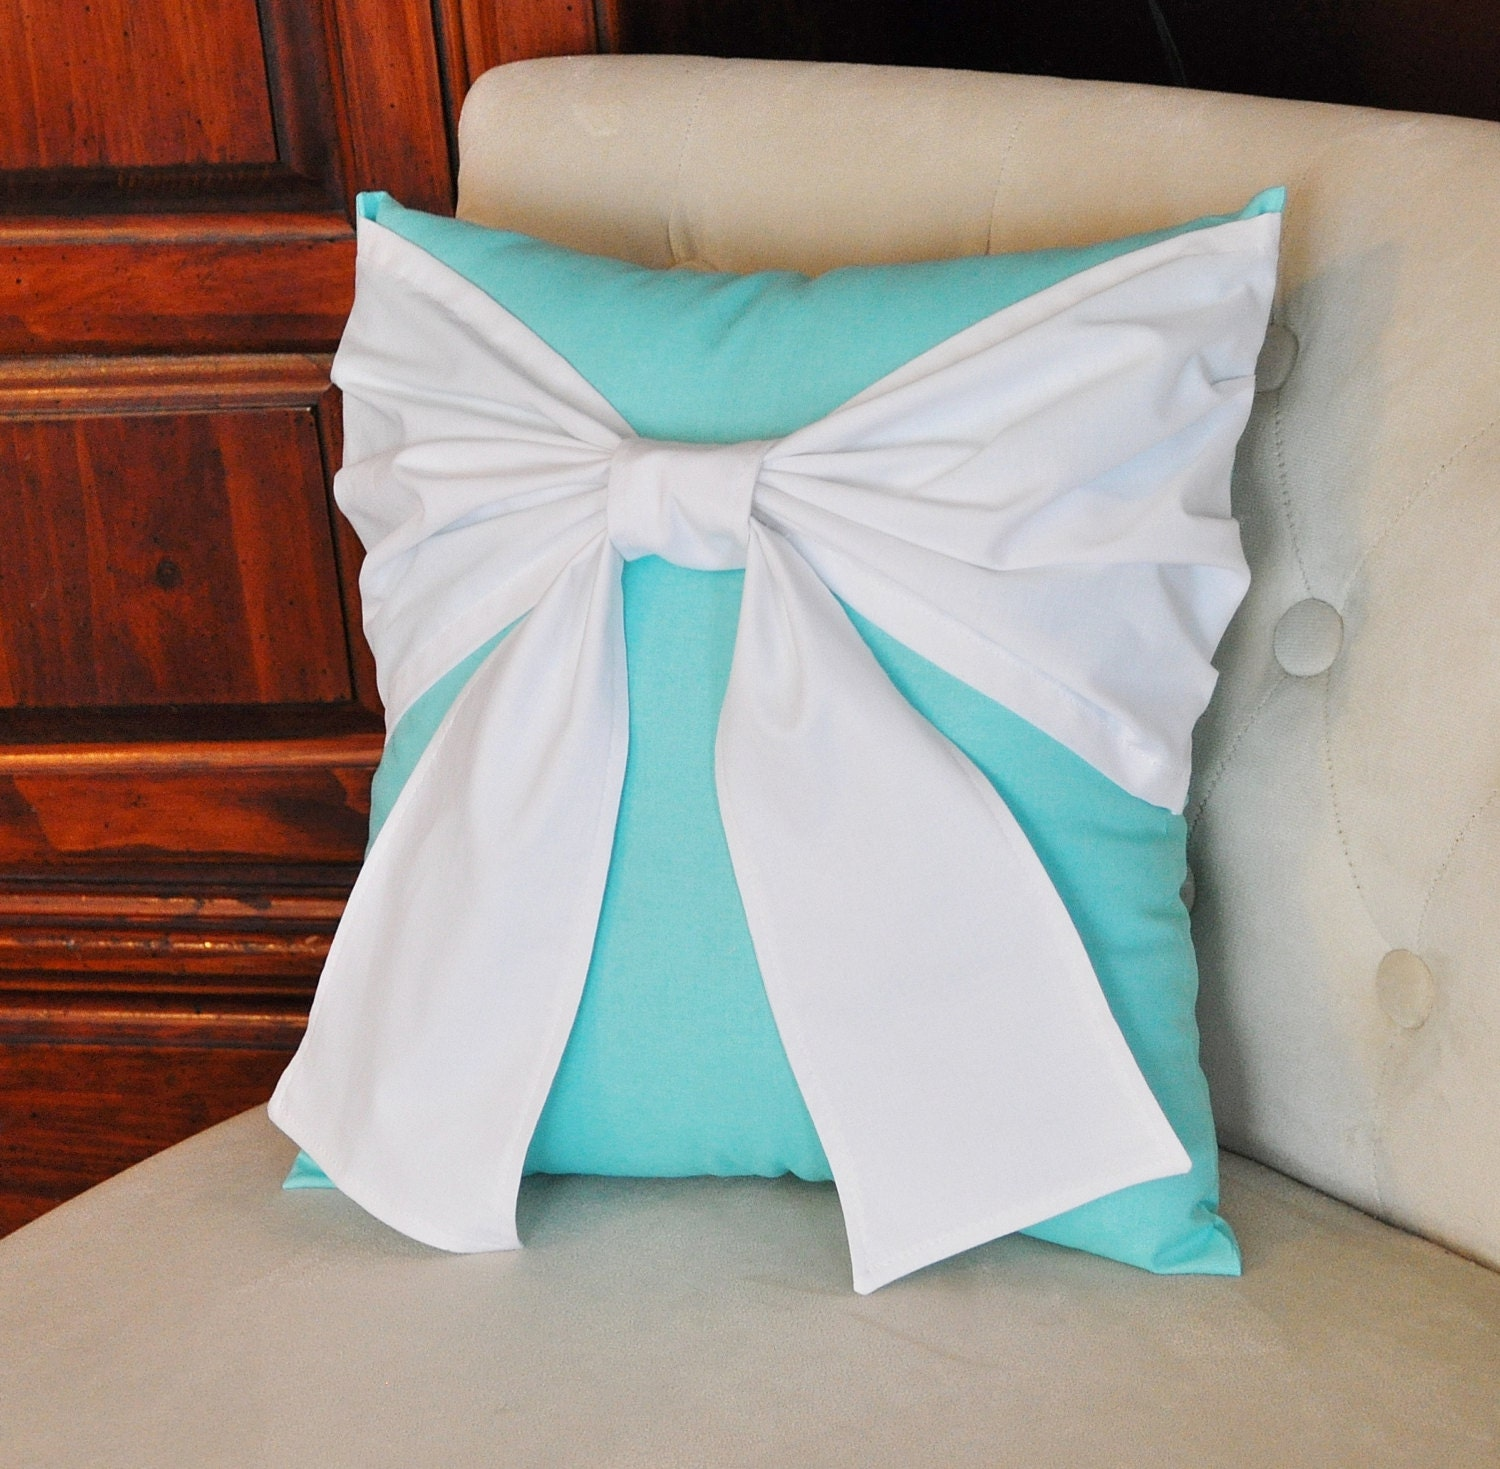 Decorative Pillows In Tiffany Blue : Throw Pillow White Bow on Bright Aqua Pillow 14x14 by bedbuggs